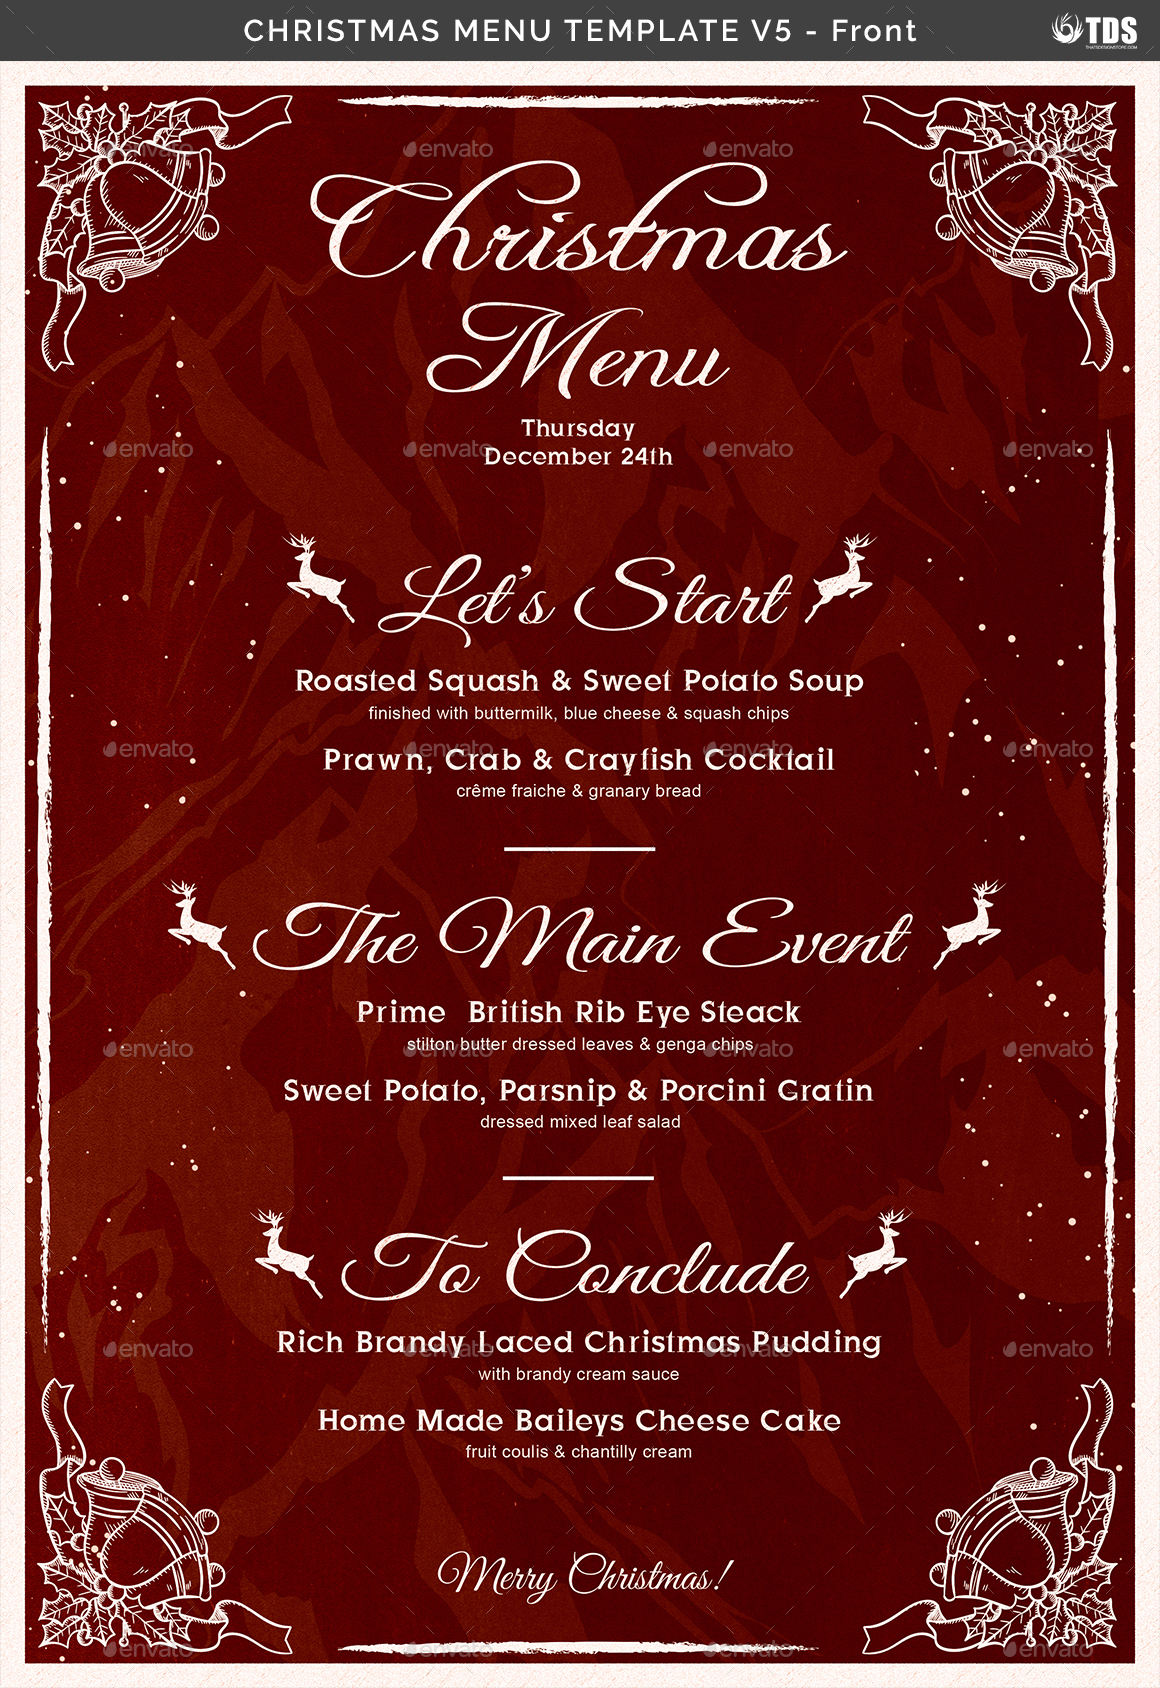 Christmas Menu Template V5 By Lou606 Graphicriver